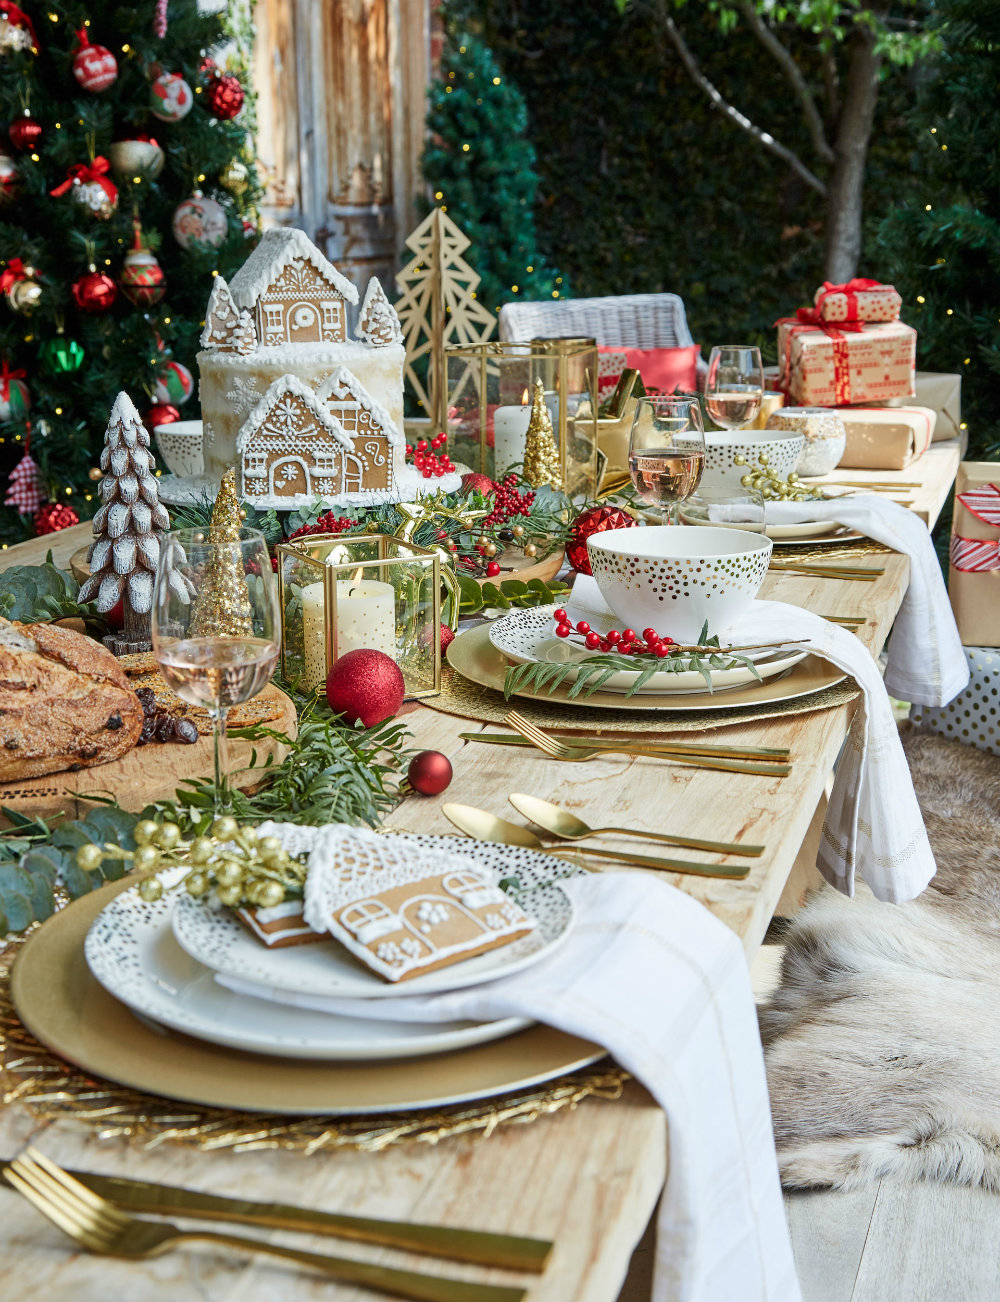 5 Elegant Christmas Table Décor Ideas